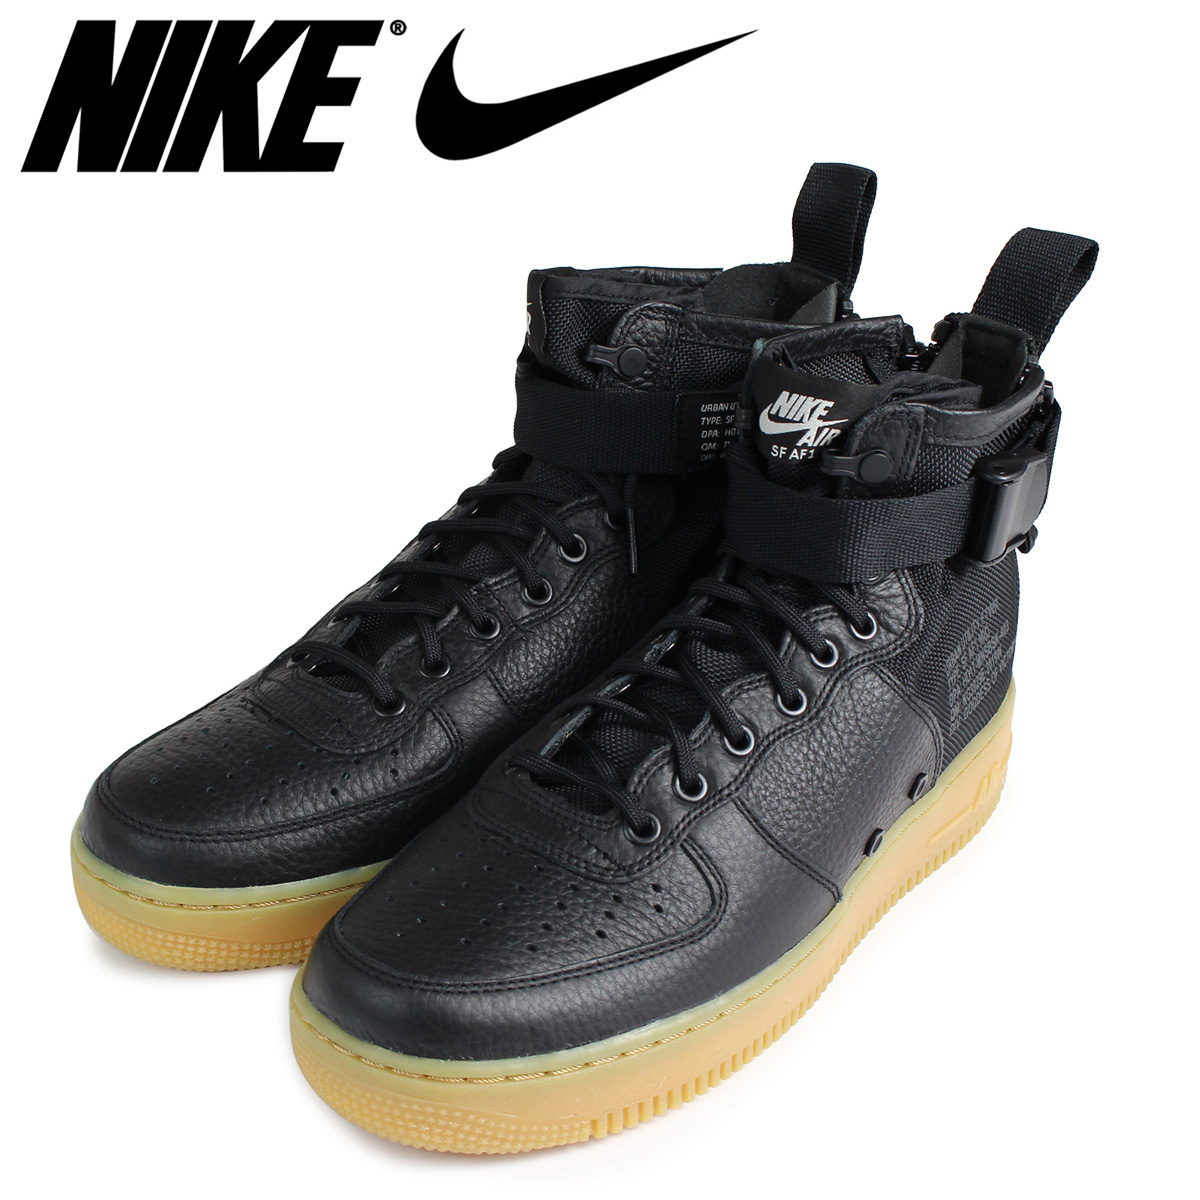 new style 18769 647c3 NIKE Nike air force 1 MID sneakers SPECIAL FIELD AIR FORCE 1 917,753-003 SF  AF1 men shoes black  load planned Shinnyu load in reservation product 11 17  ...